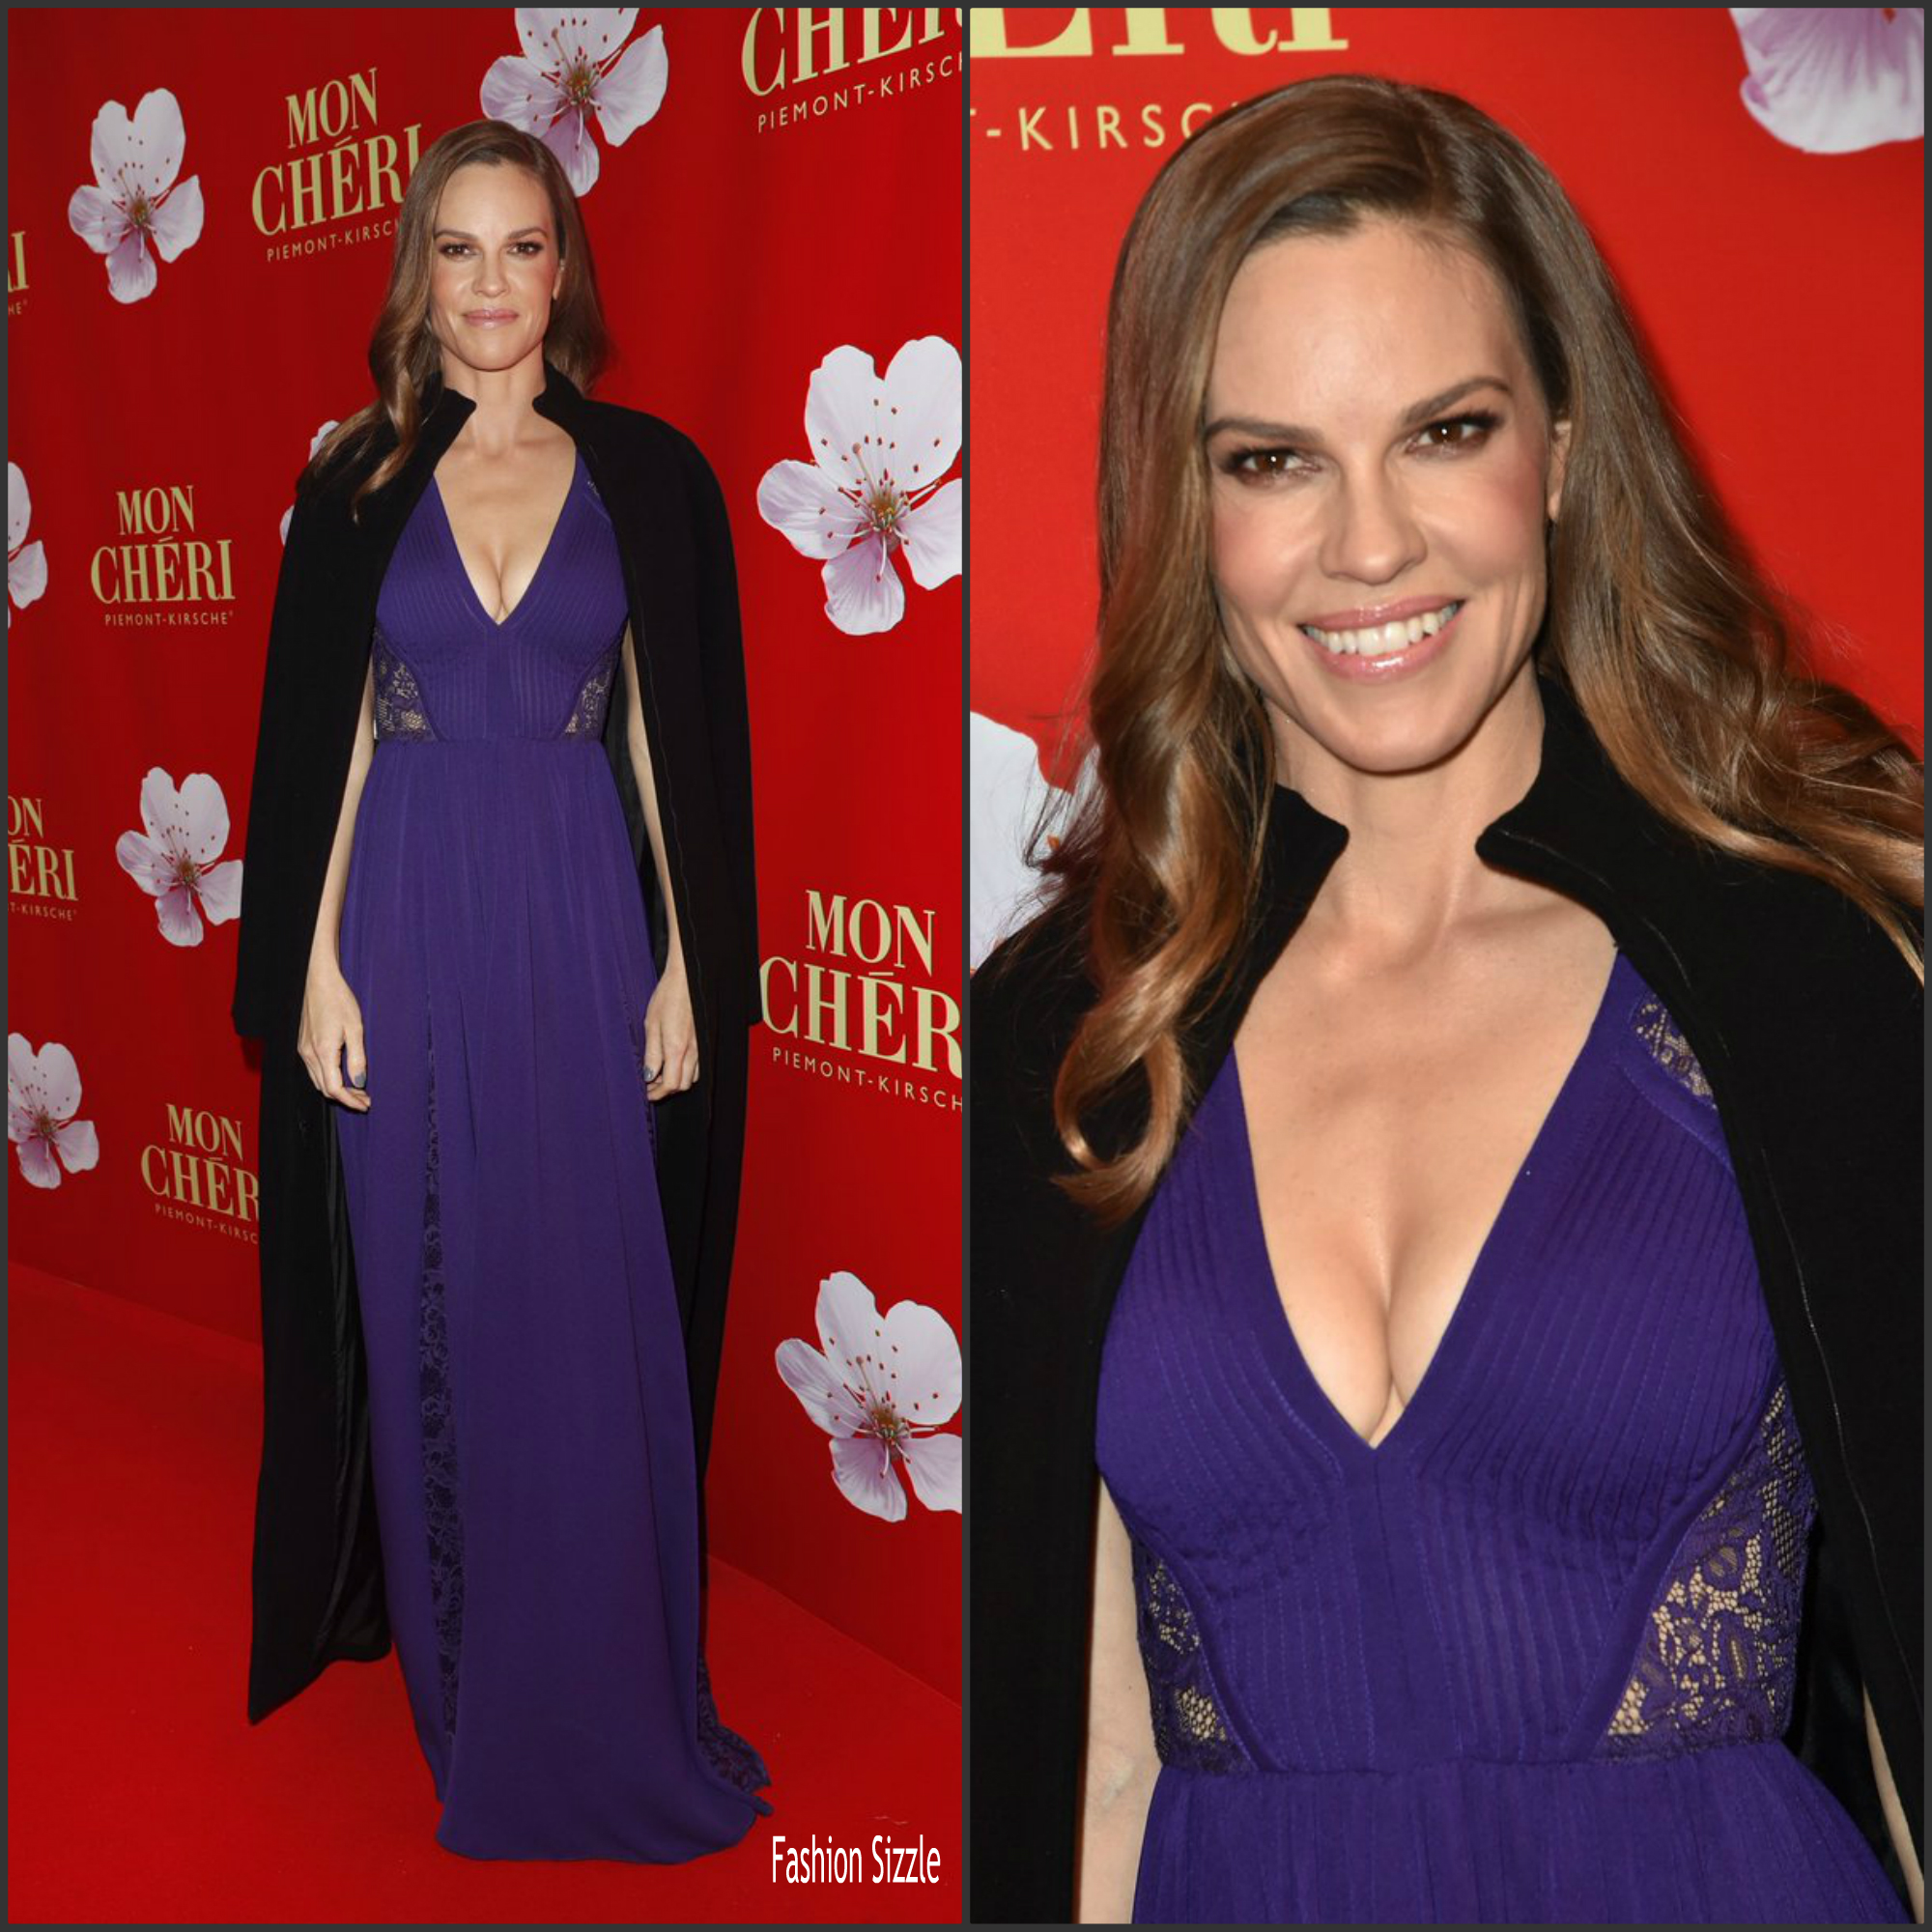 hilary-swank-in-elie-saab-at-mon-cheri-barbara-tag-charity-event-in-germany